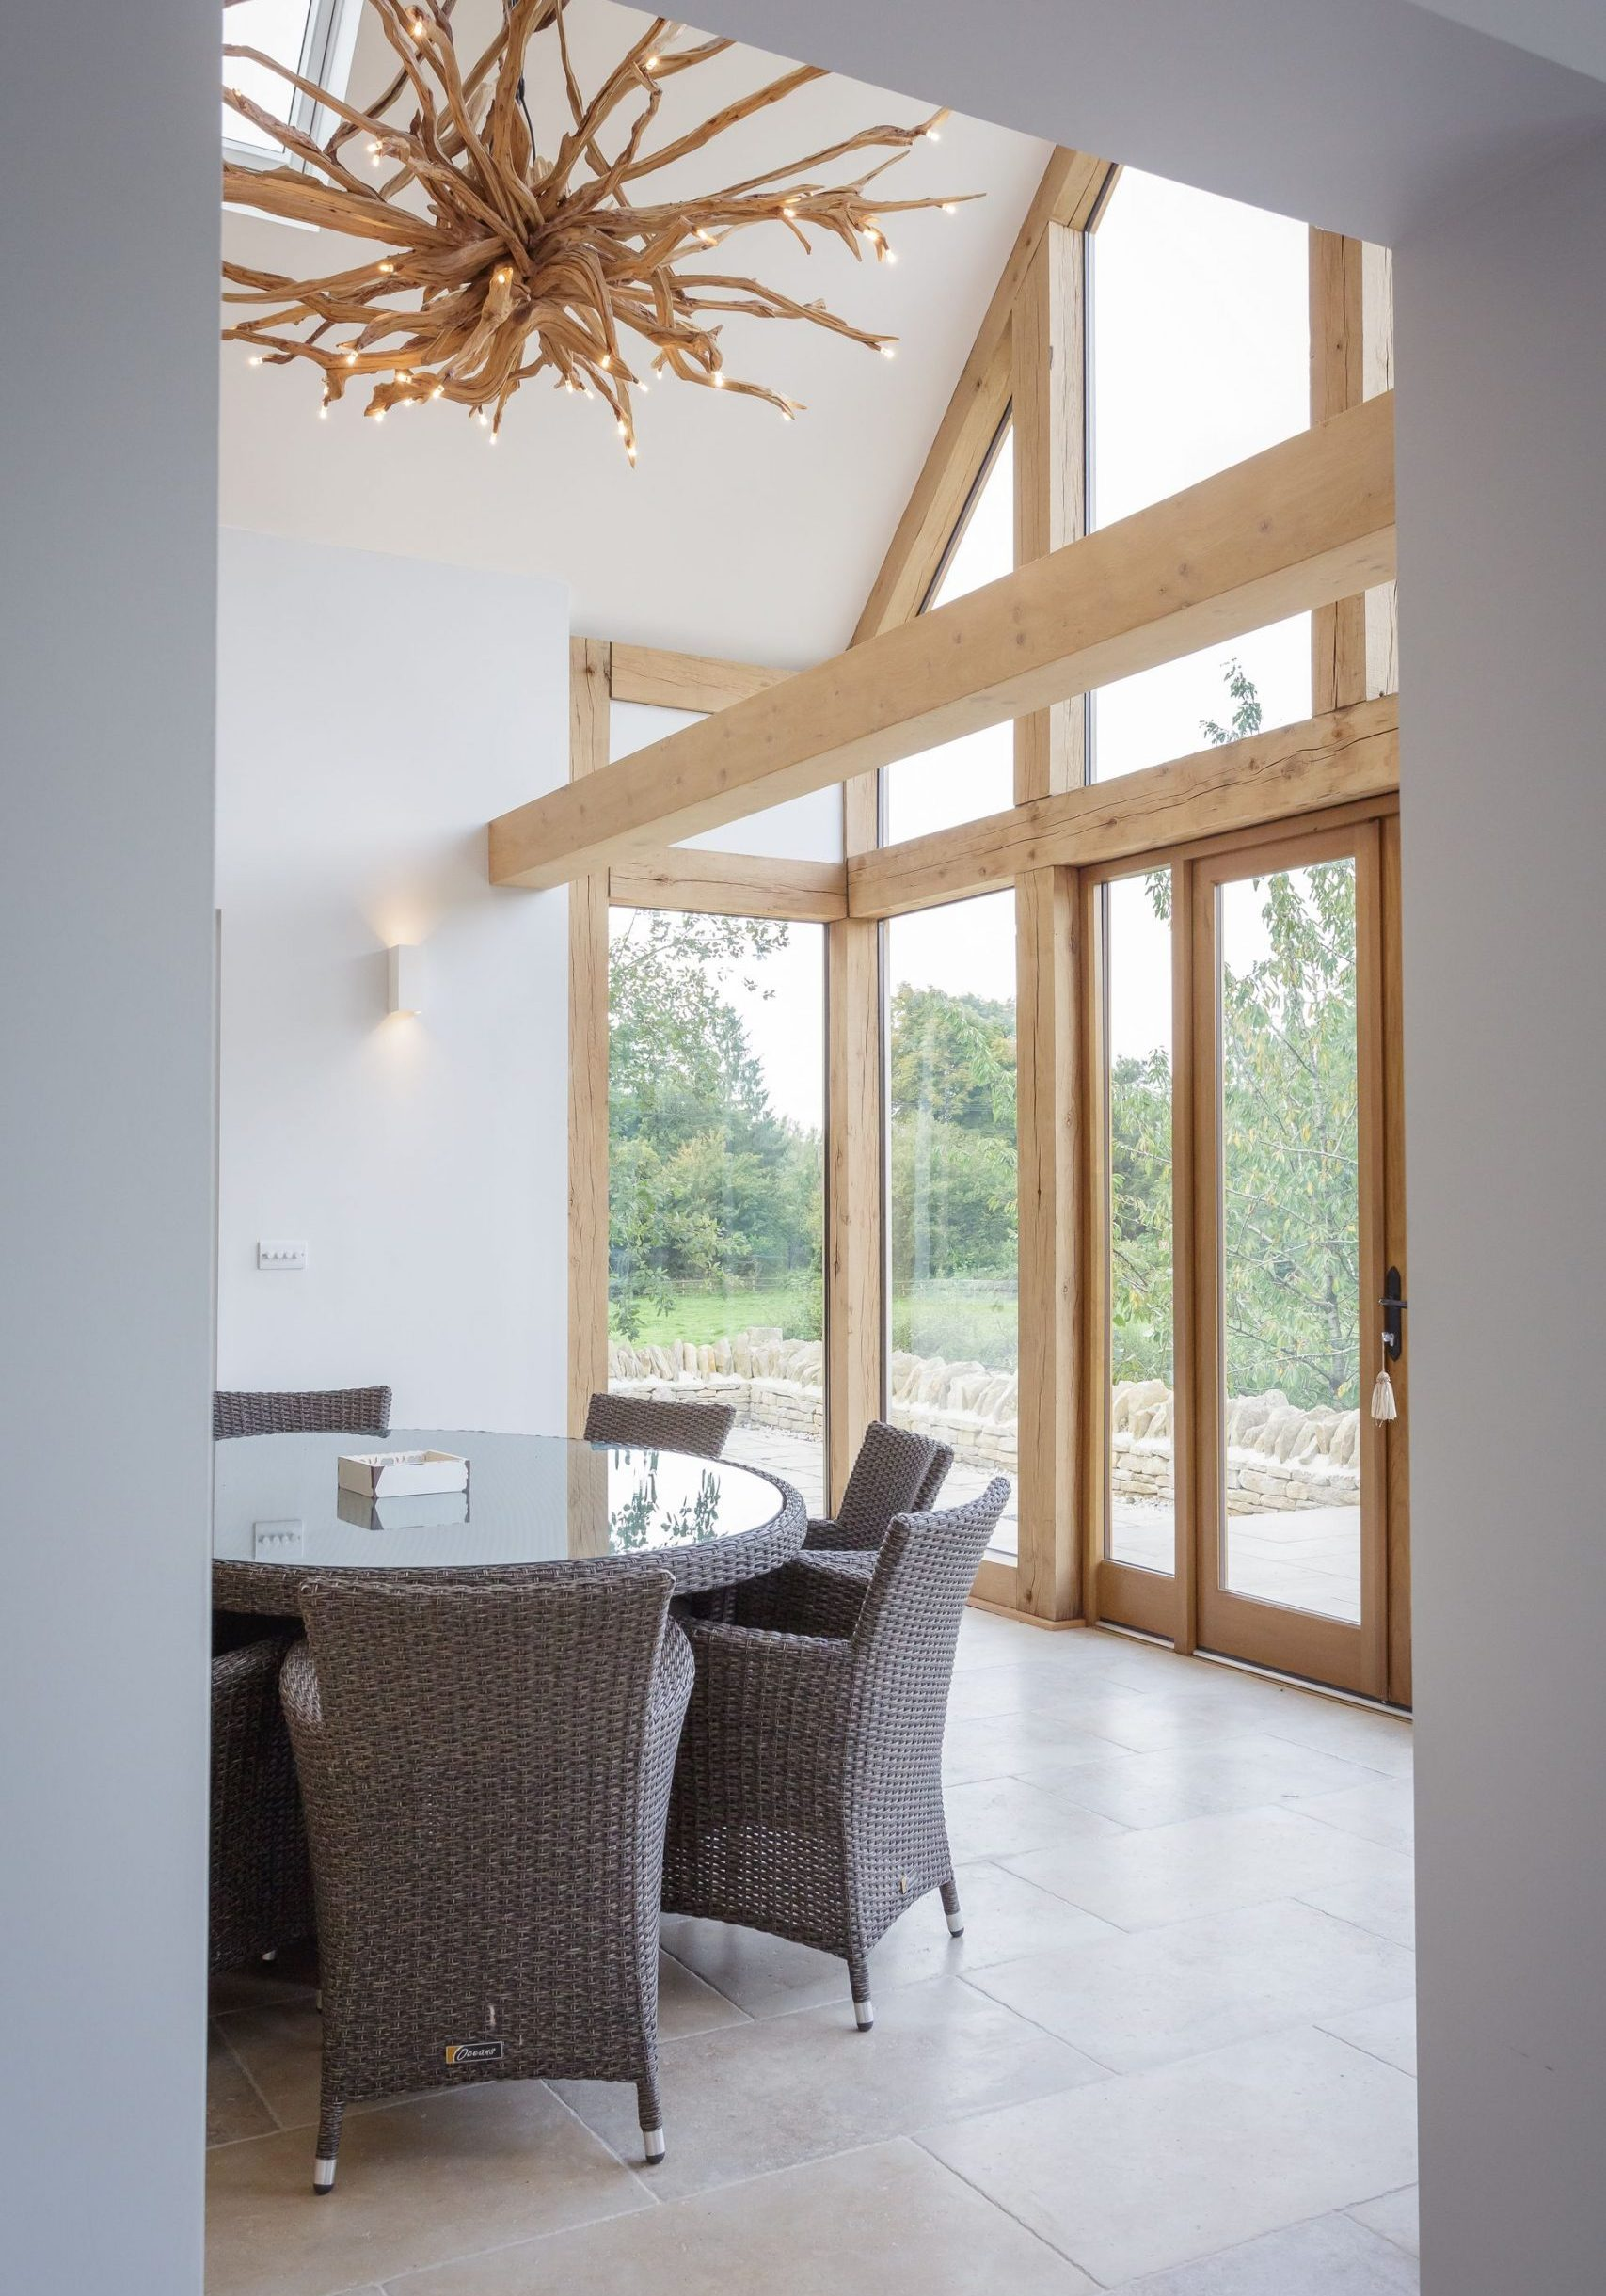 CE - Coln Cottage - Dining Room 002